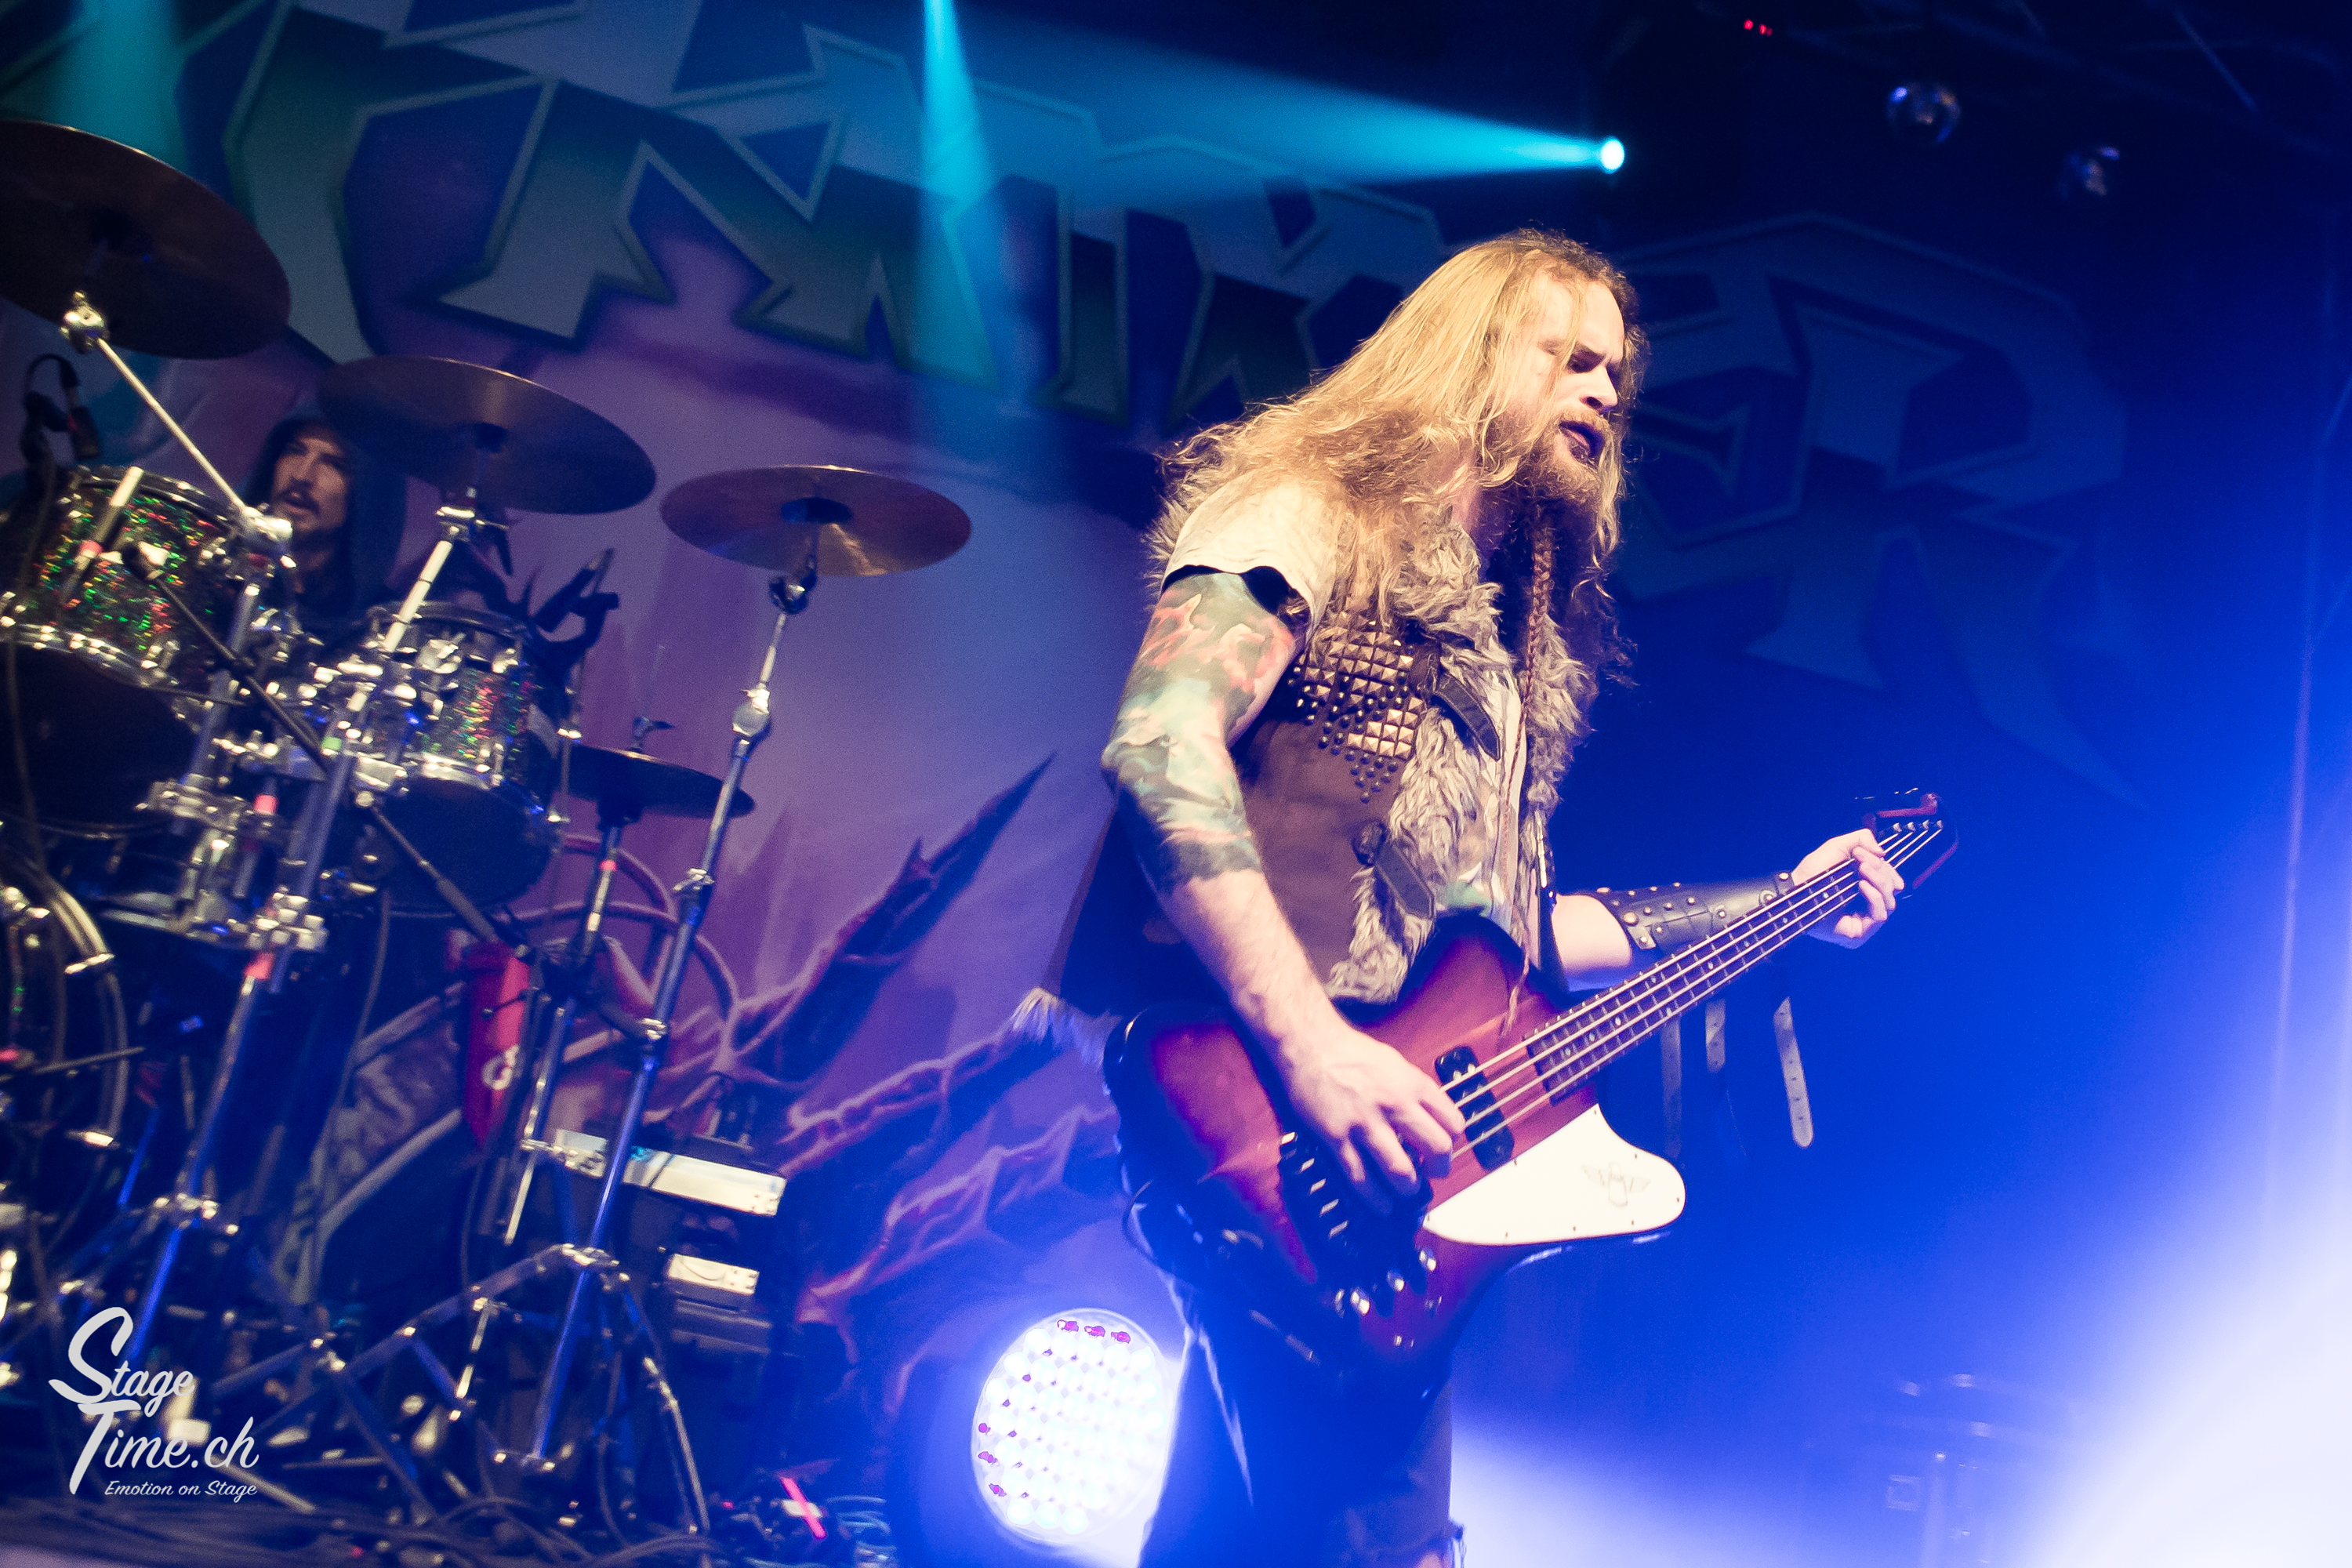 Gloryhammer_(Foto-Christoph_Gurtner-_Stagetime.ch)-2